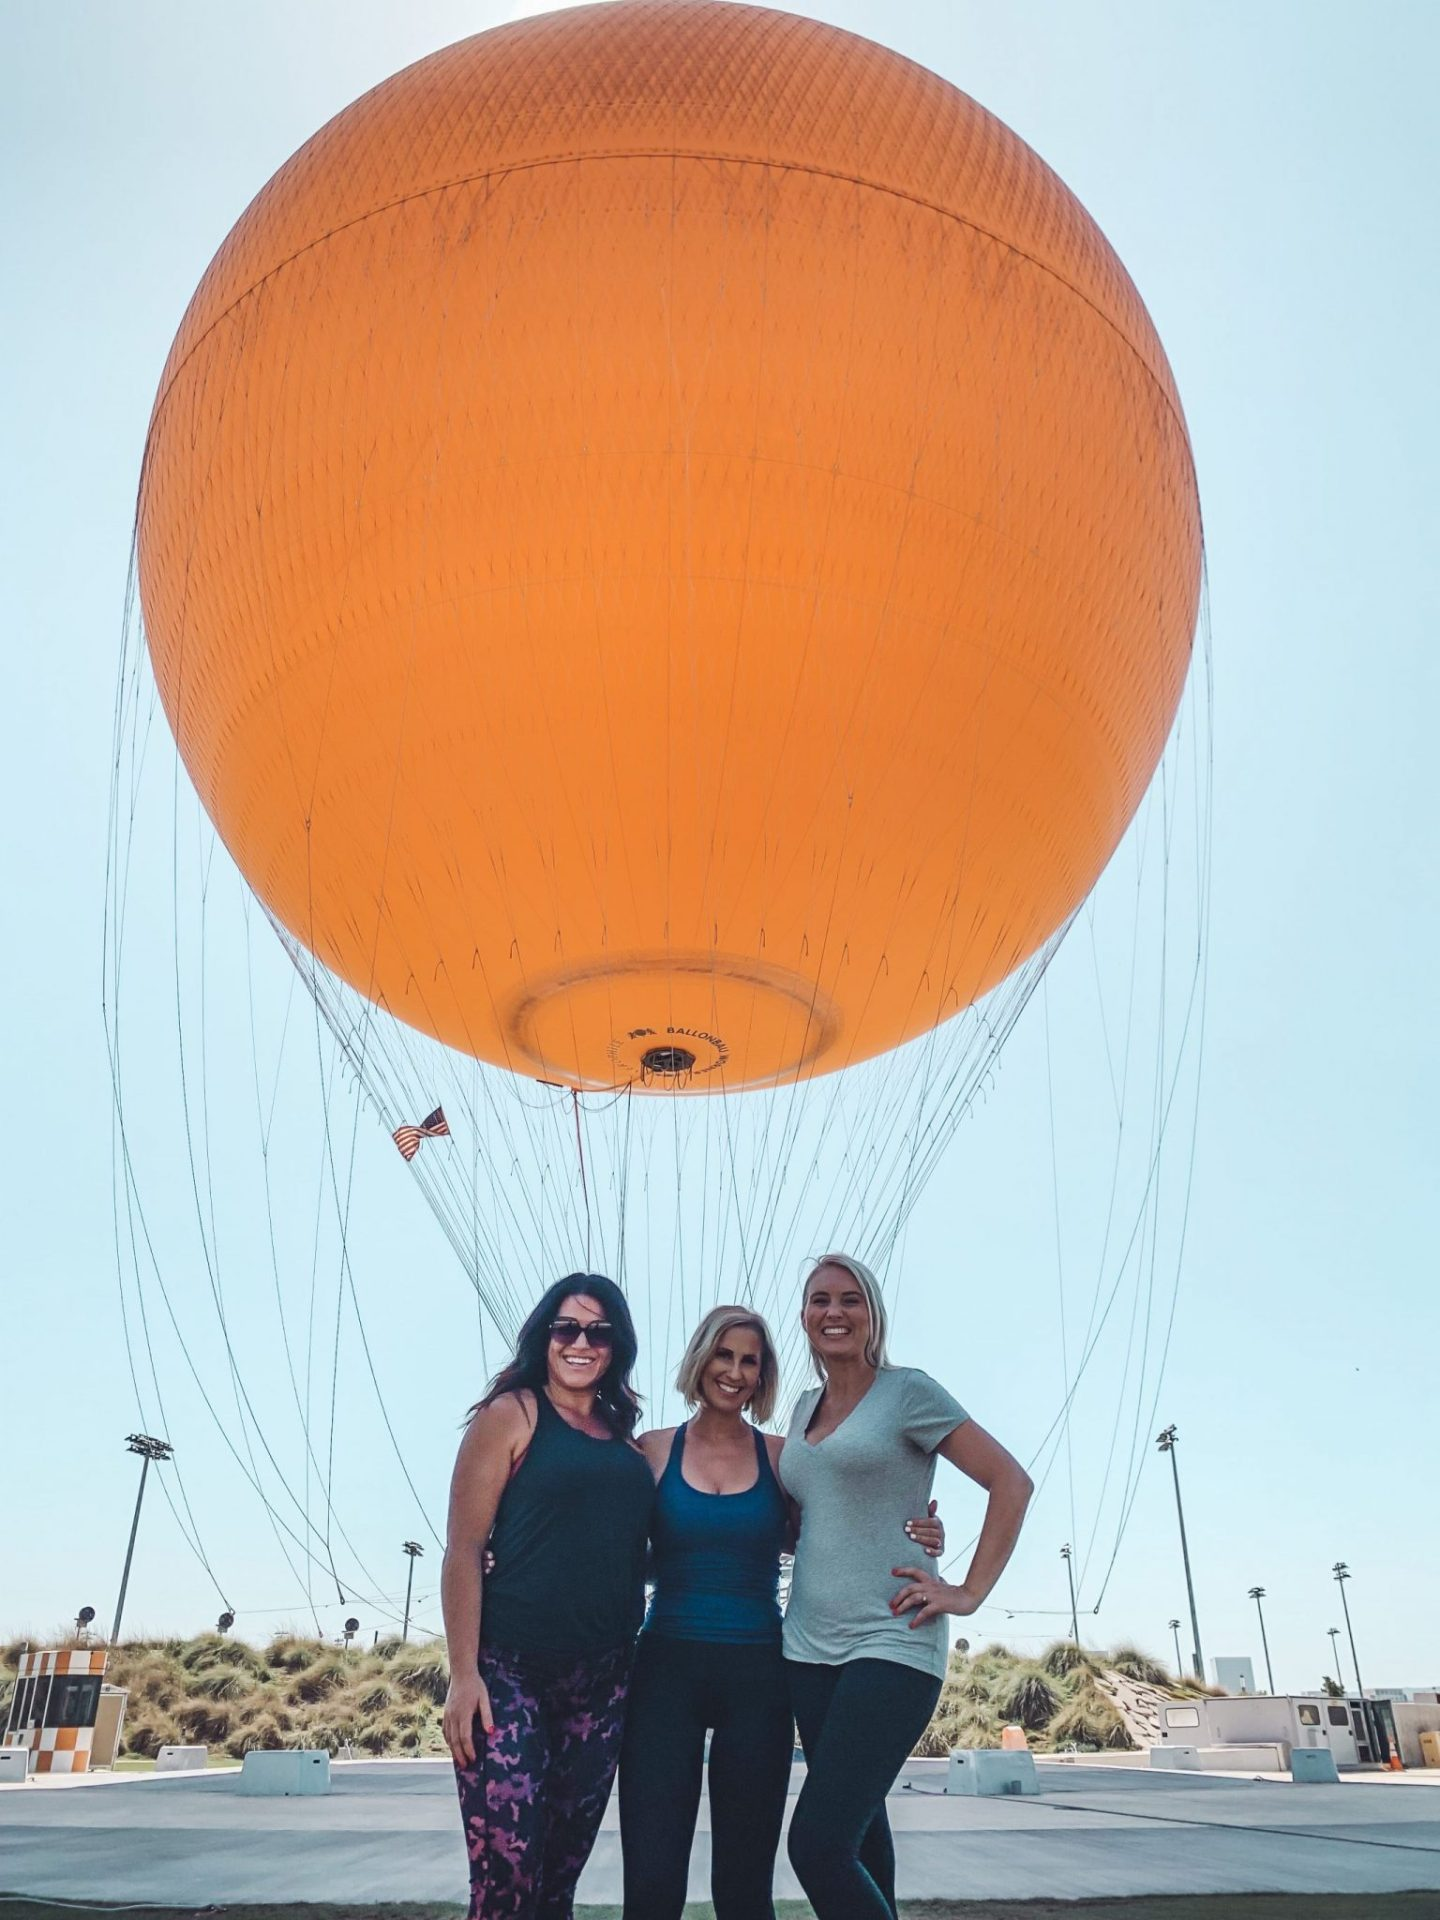 California Vacation Ideas for a Momcation in Orange County by popular Nashville travel blog, Modern Day Moguls: image of three women standing in front of a hot air balloon.